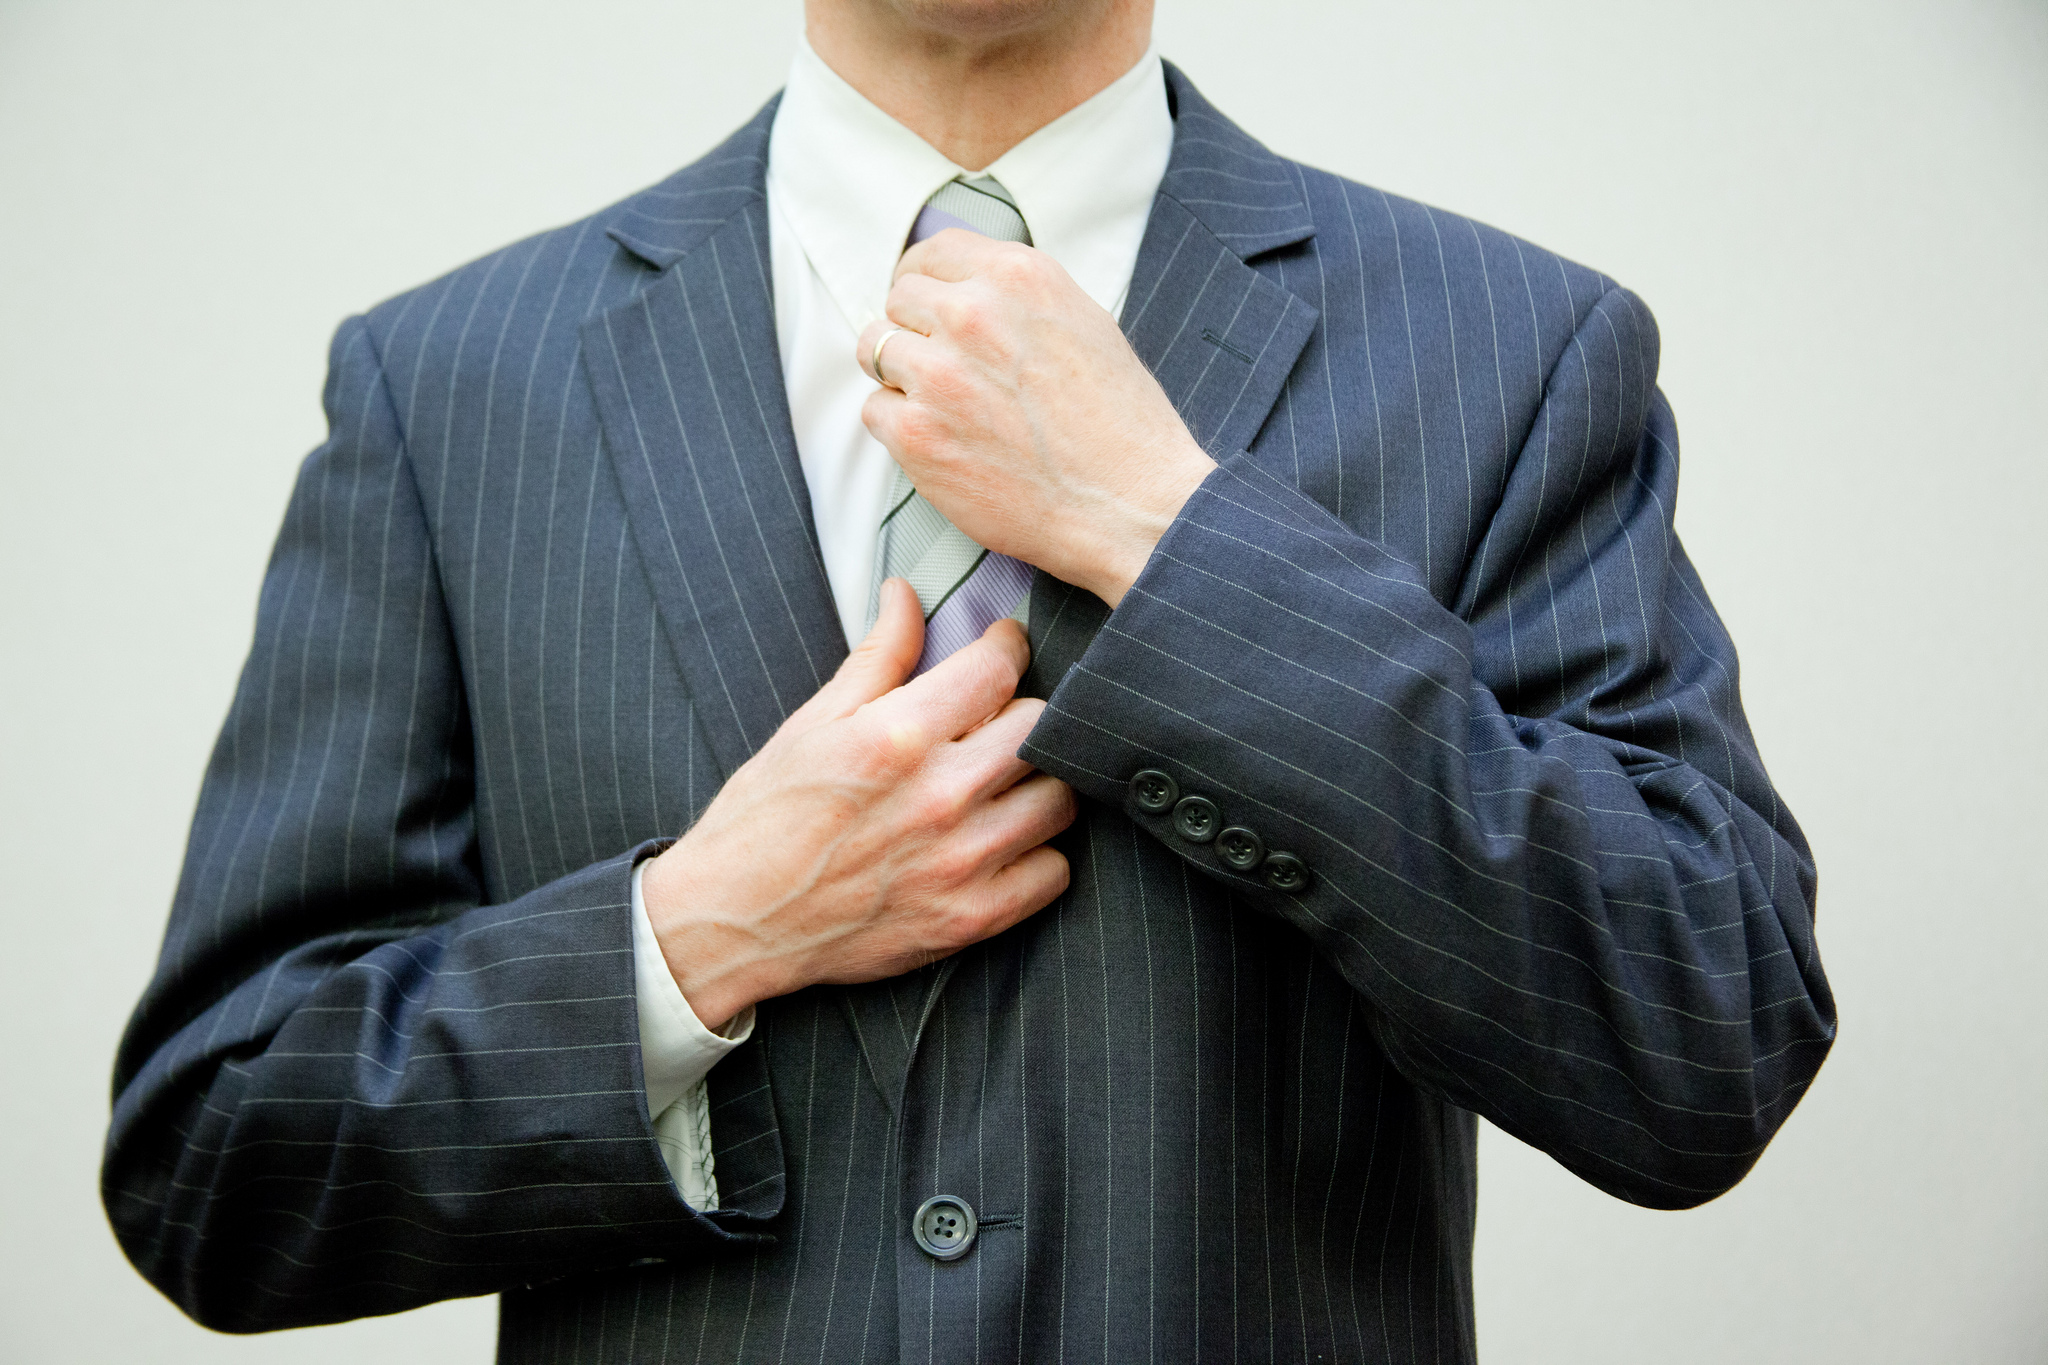 How to choose the perfect interview outfit